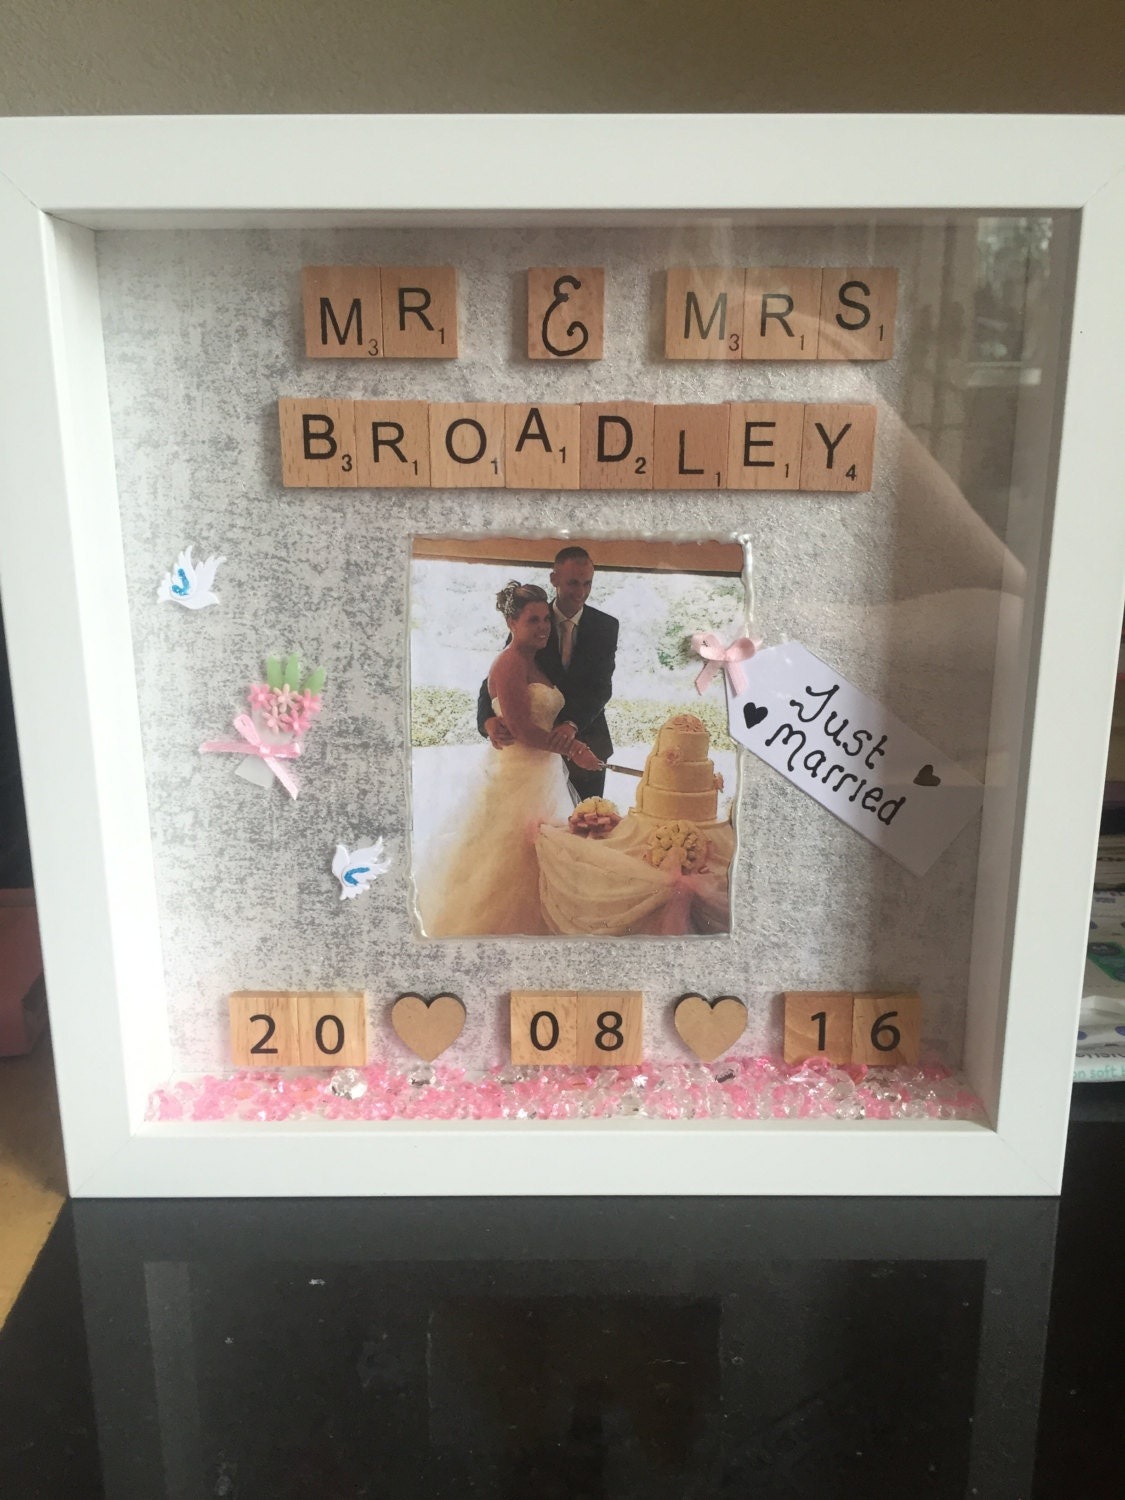 Average Cash Gift For Wedding: Personalised Wedding Gift Wedding Shadow Box Art Mr And Mrs